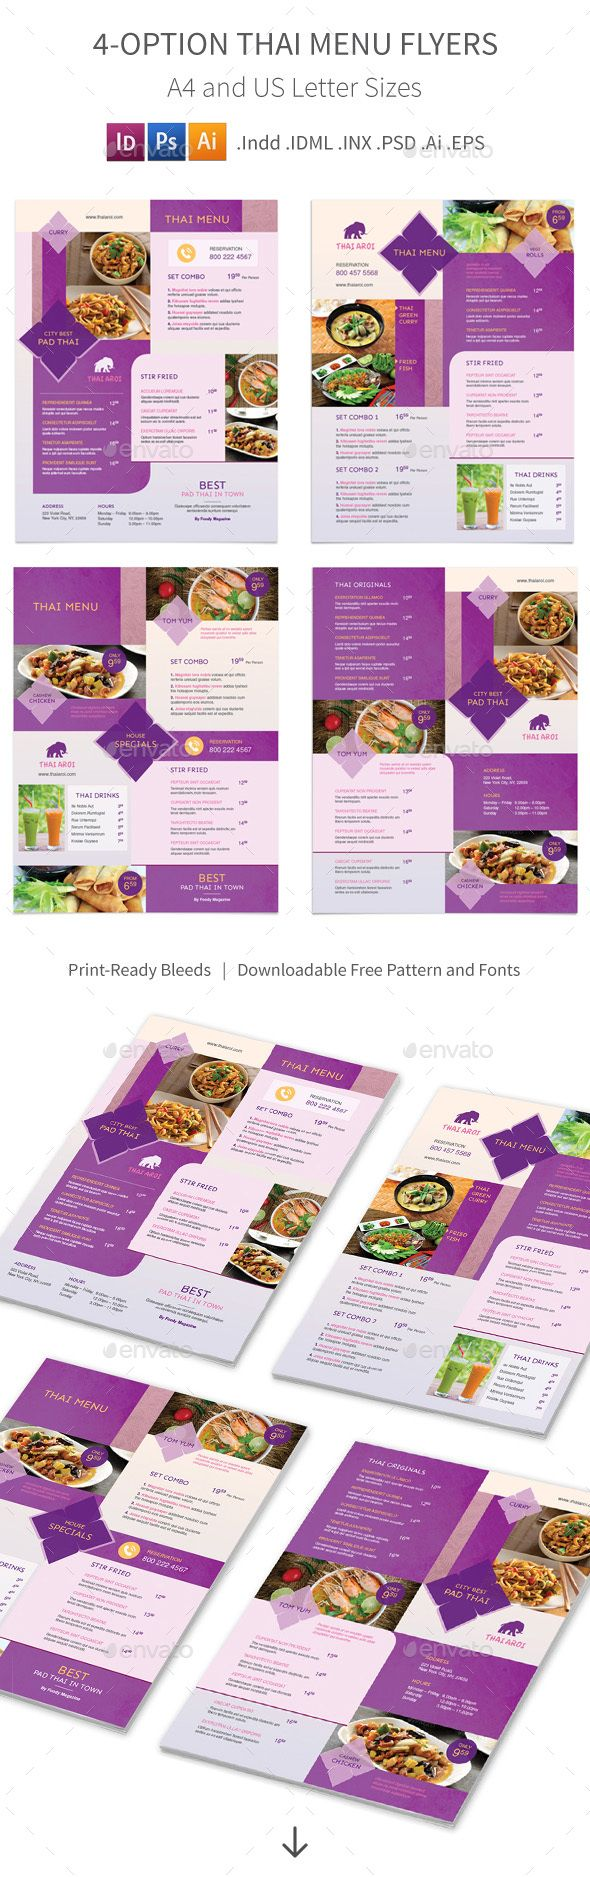 Thai Restaurant Menu Flyer Template 3 – 4 Options - Food Menus Print Template PSD, InDesign INDD, Vector EPS, Vector AI. Download here: http://graphicriver.net/item/thai-restaurant-menu-flyers-3-4-options/16428025?s_rank=62&ref=yinkira